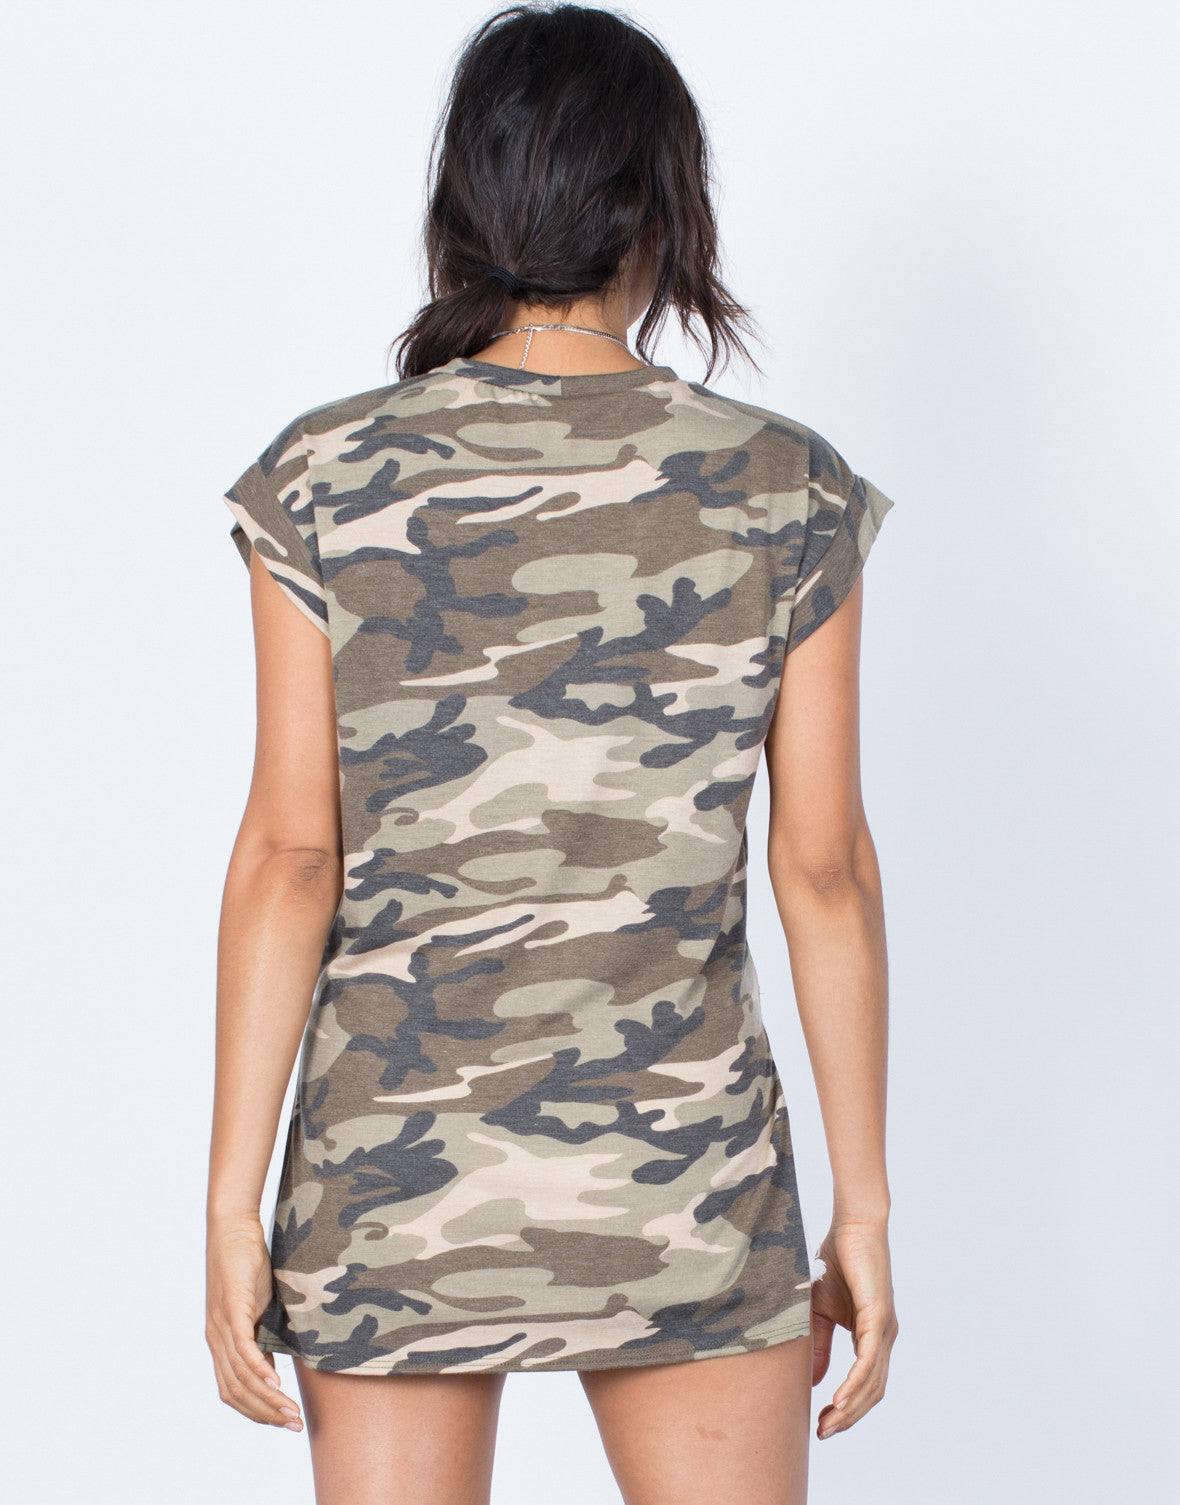 Back View of Tied in Camo Top